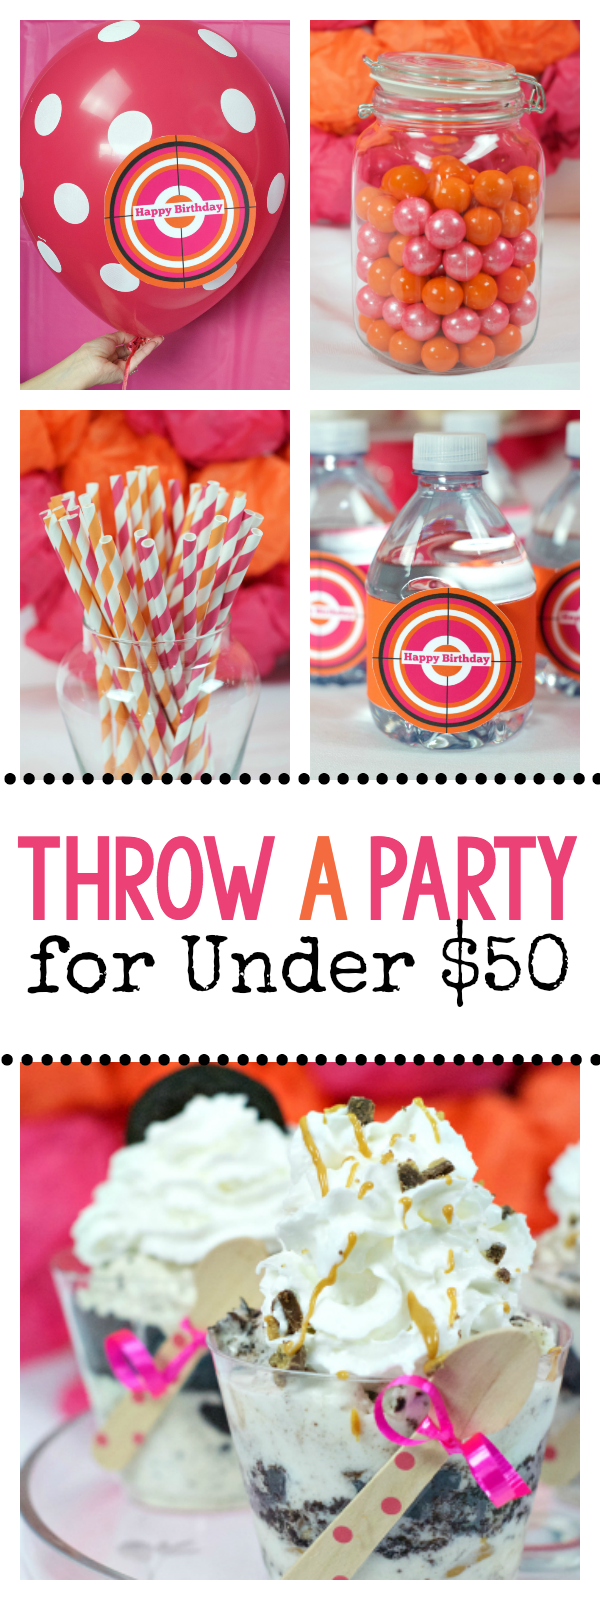 Throw a Party on a Budget